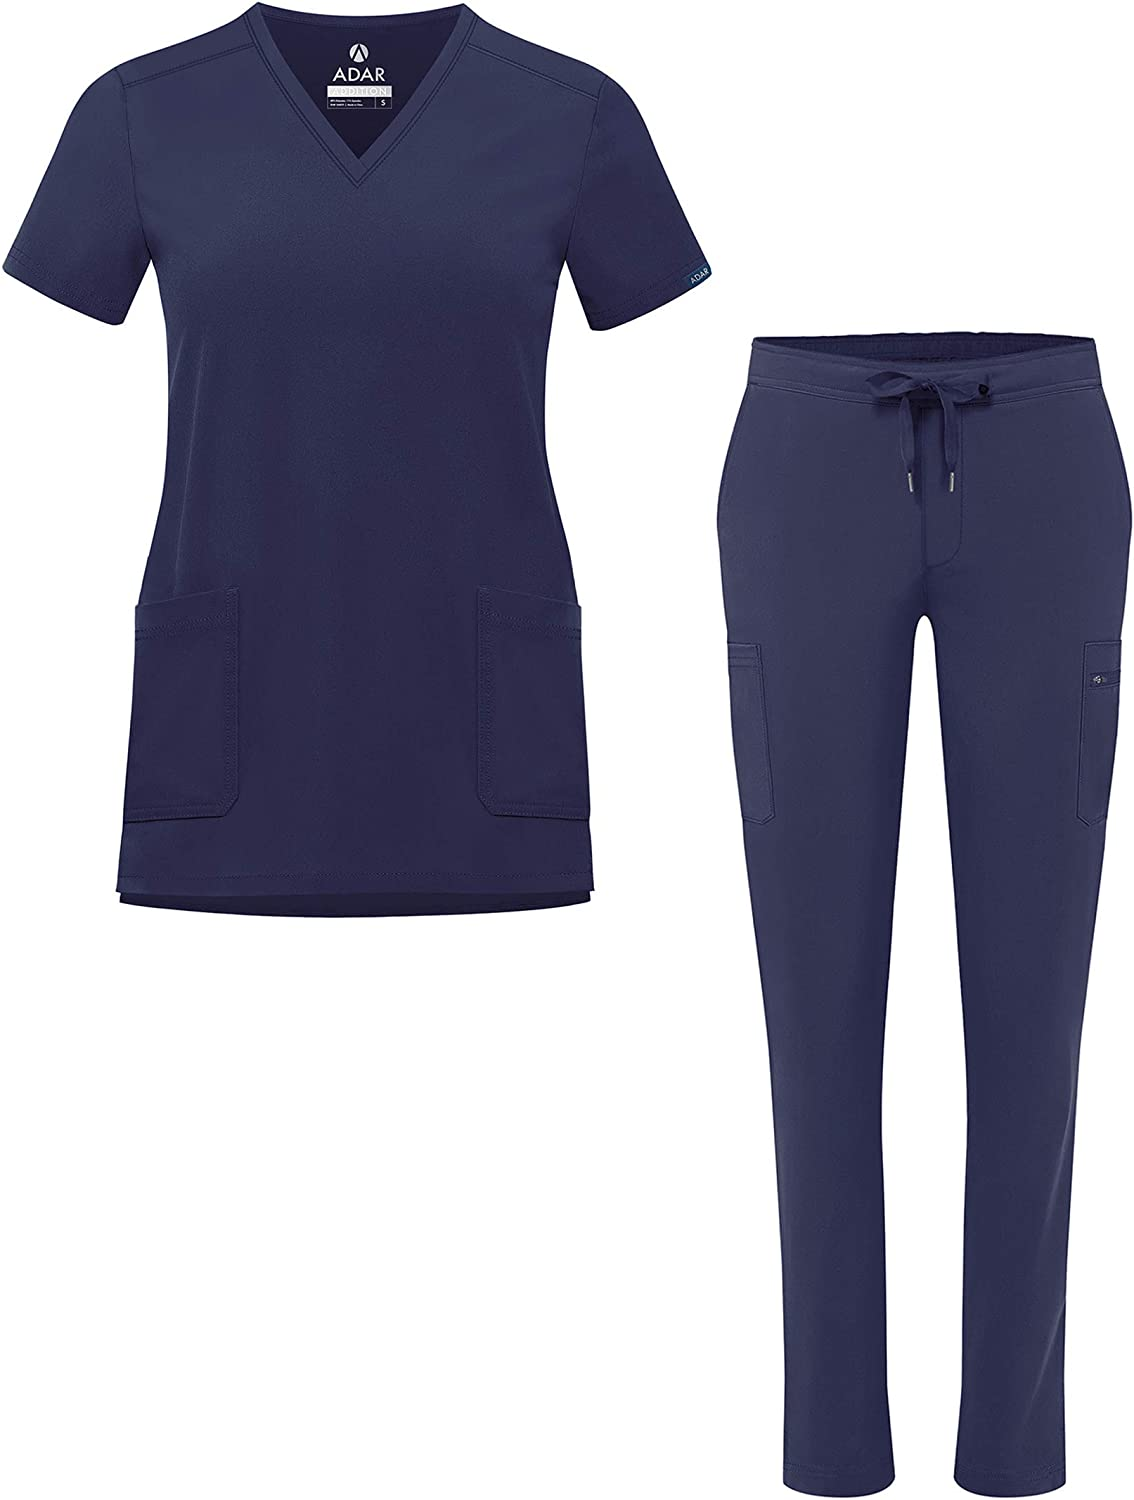 Adar Addition Go-Basic Scrub Set for Women - Slim V-Neck Scrub Top & Skinny Cargo Scrub Pants: Clothing